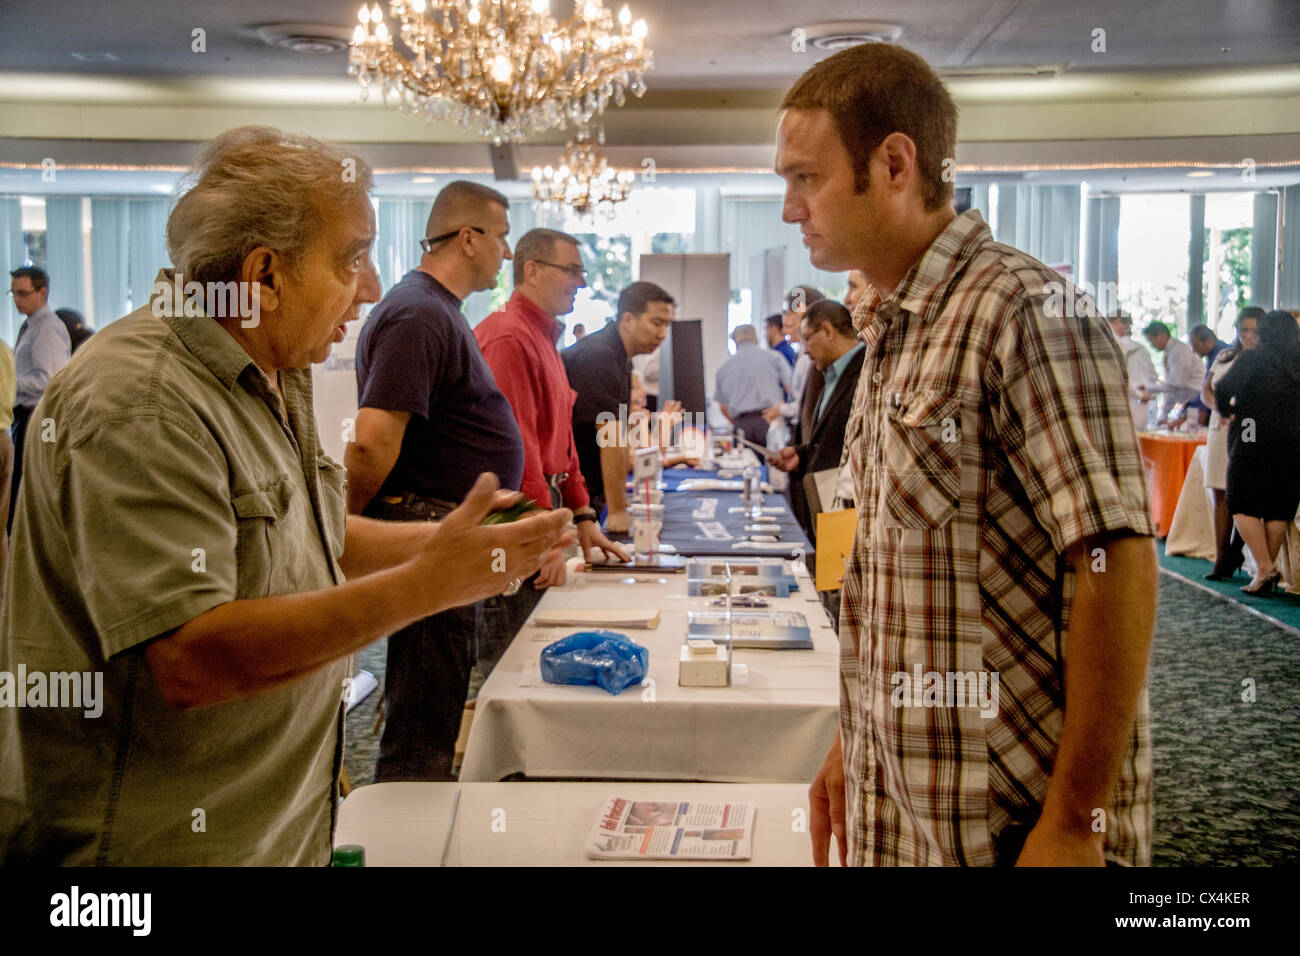 A young man discusses employment possibilities at a job fair for military veterans in Santa Ana, CA. - Stock Image